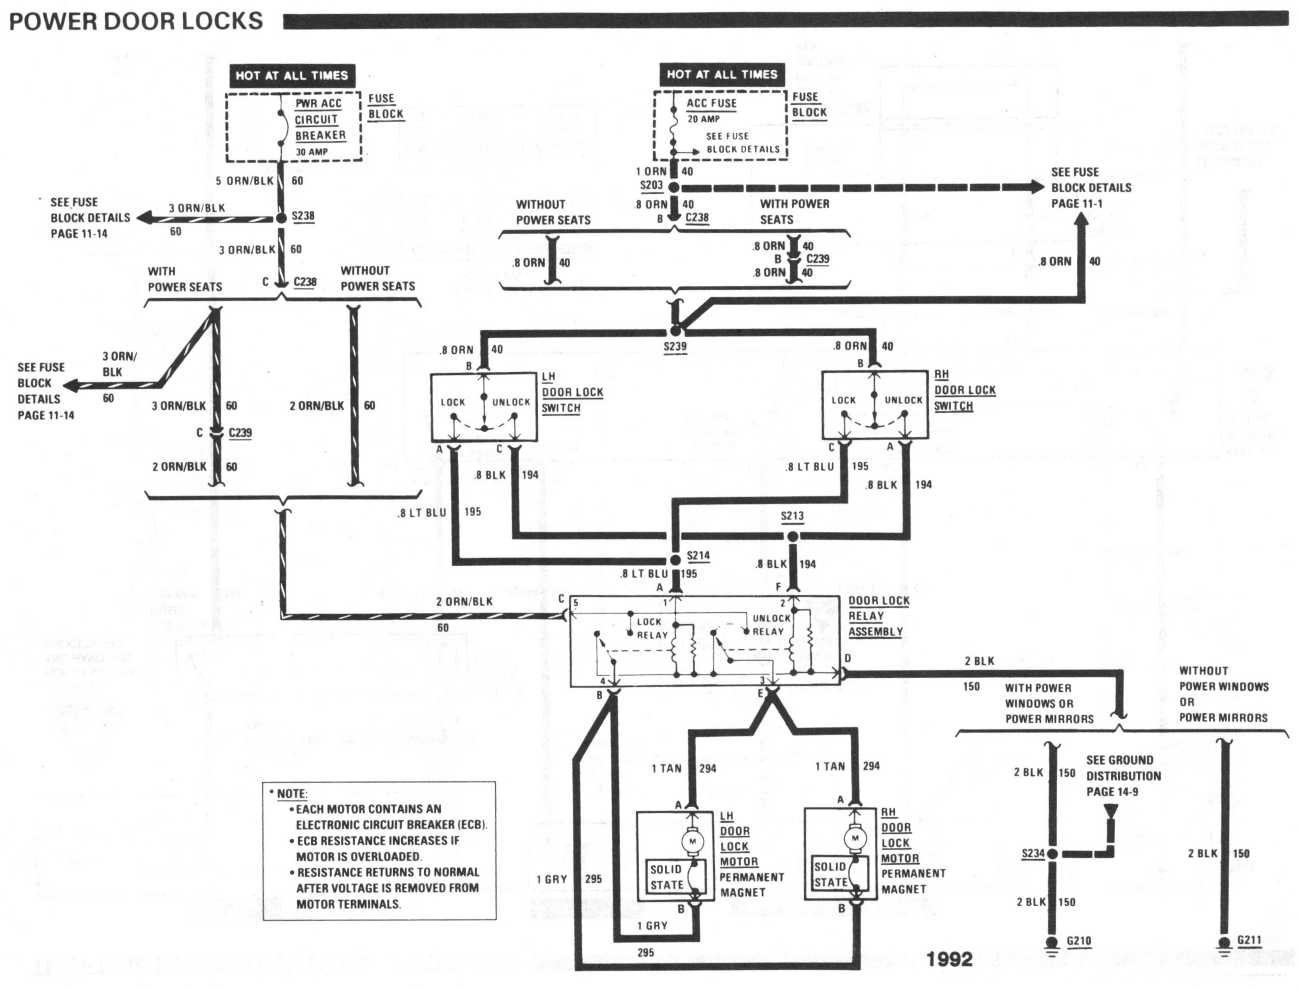 1989 gmc sierra door locks wiring diagrams - wiring diagram mere-guide -  mere-guide.pmov2019.it  pmov2019.it